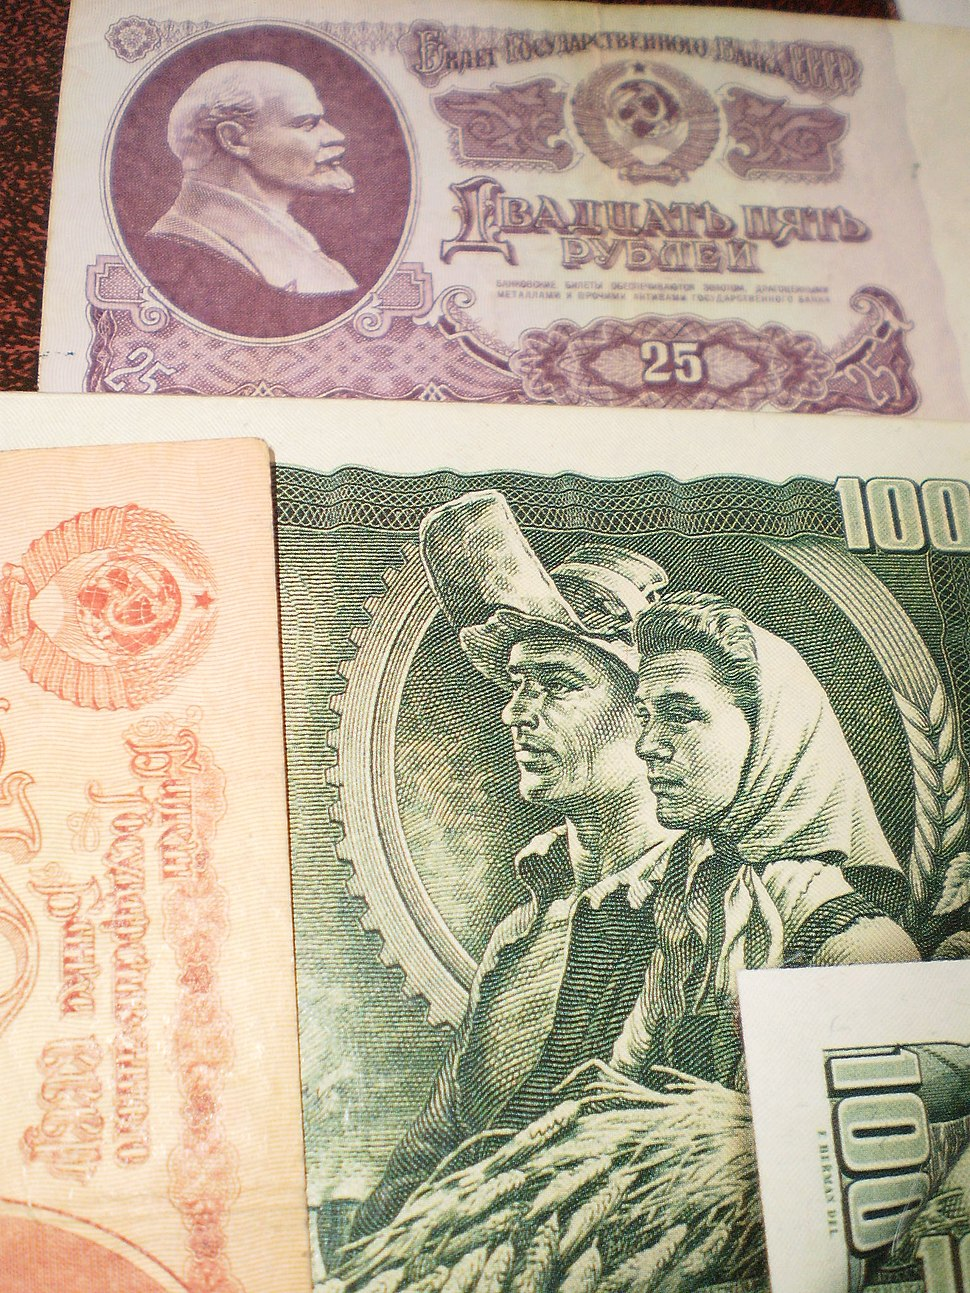 Symbolics onthe banknotes of socialist state